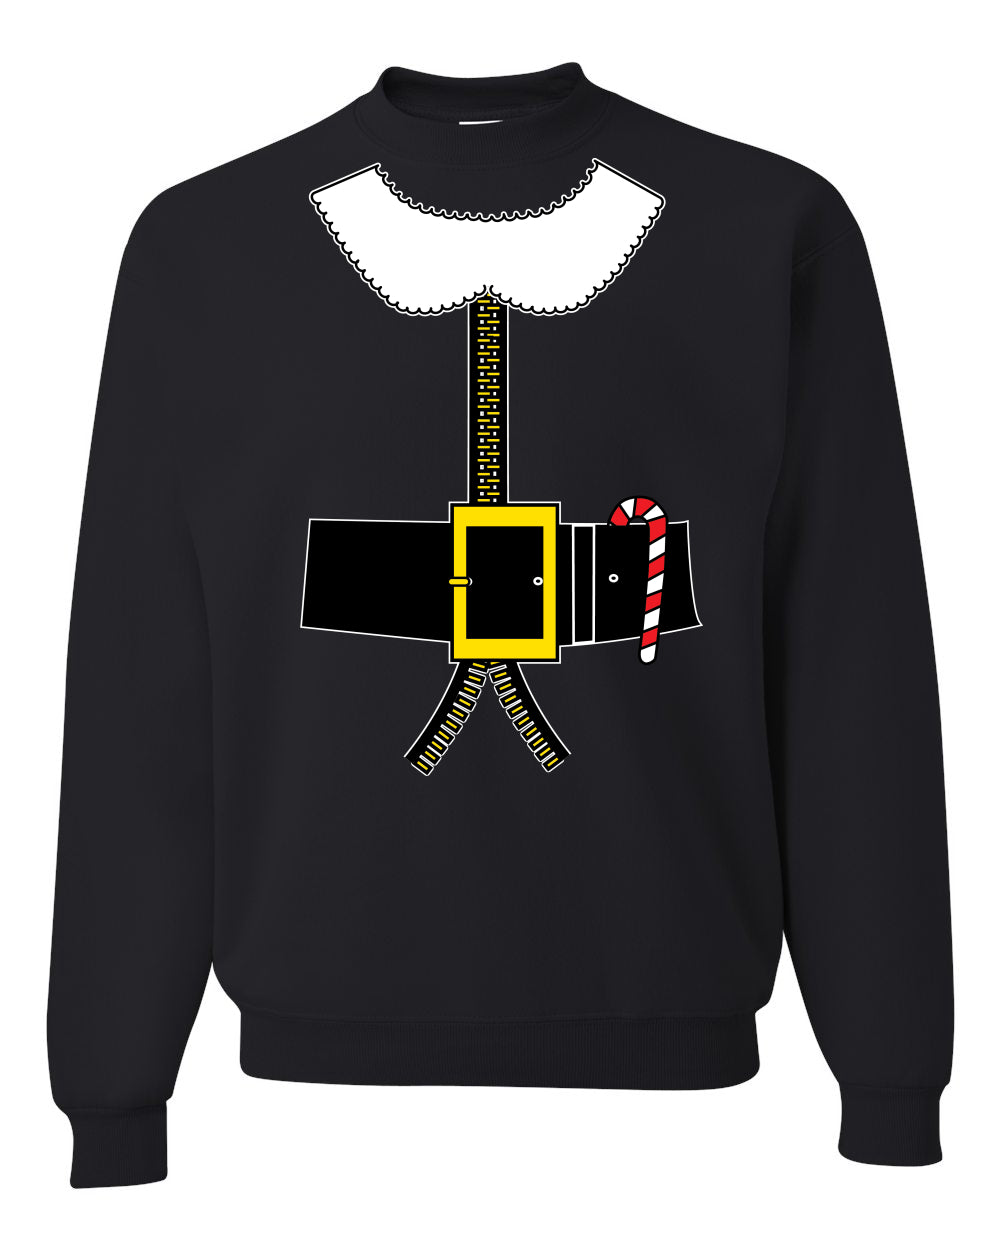 Santa Suit with Beard Belt Candy Cane Christmas Unisex Crewneck Graphic Sweatshirt